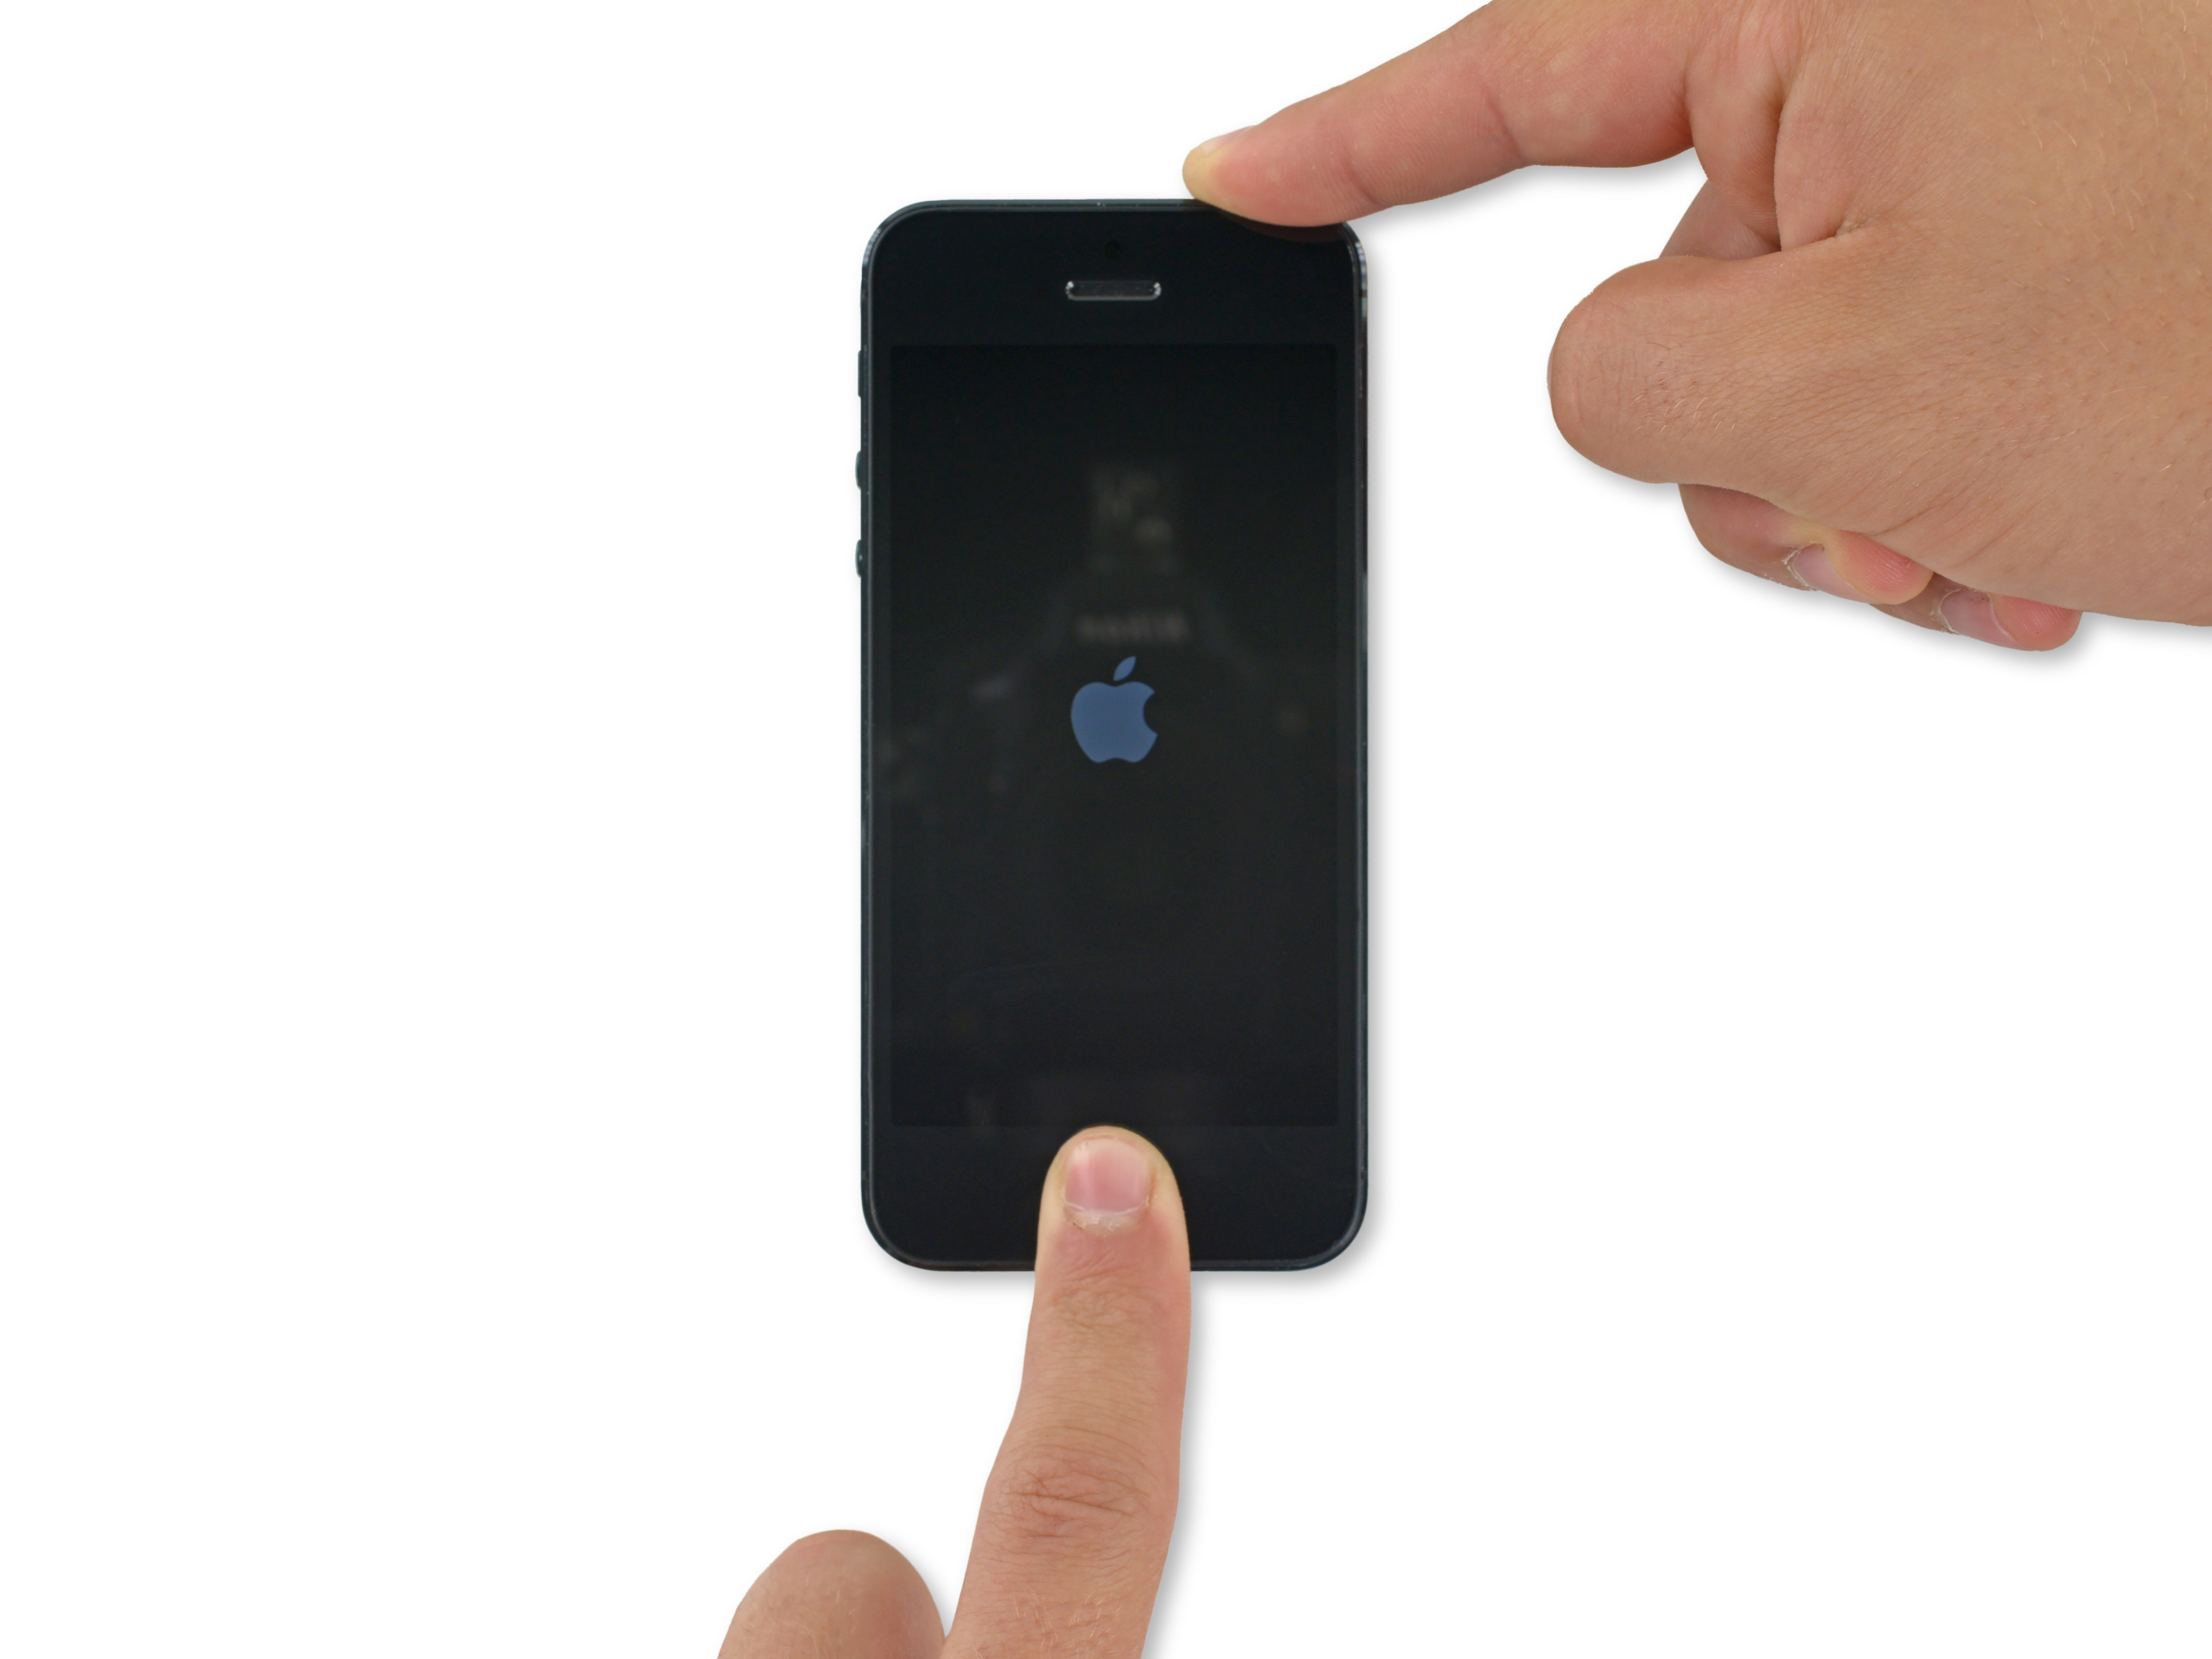 How to Force Restart an iPhone 28s - iFixit Repair Guide